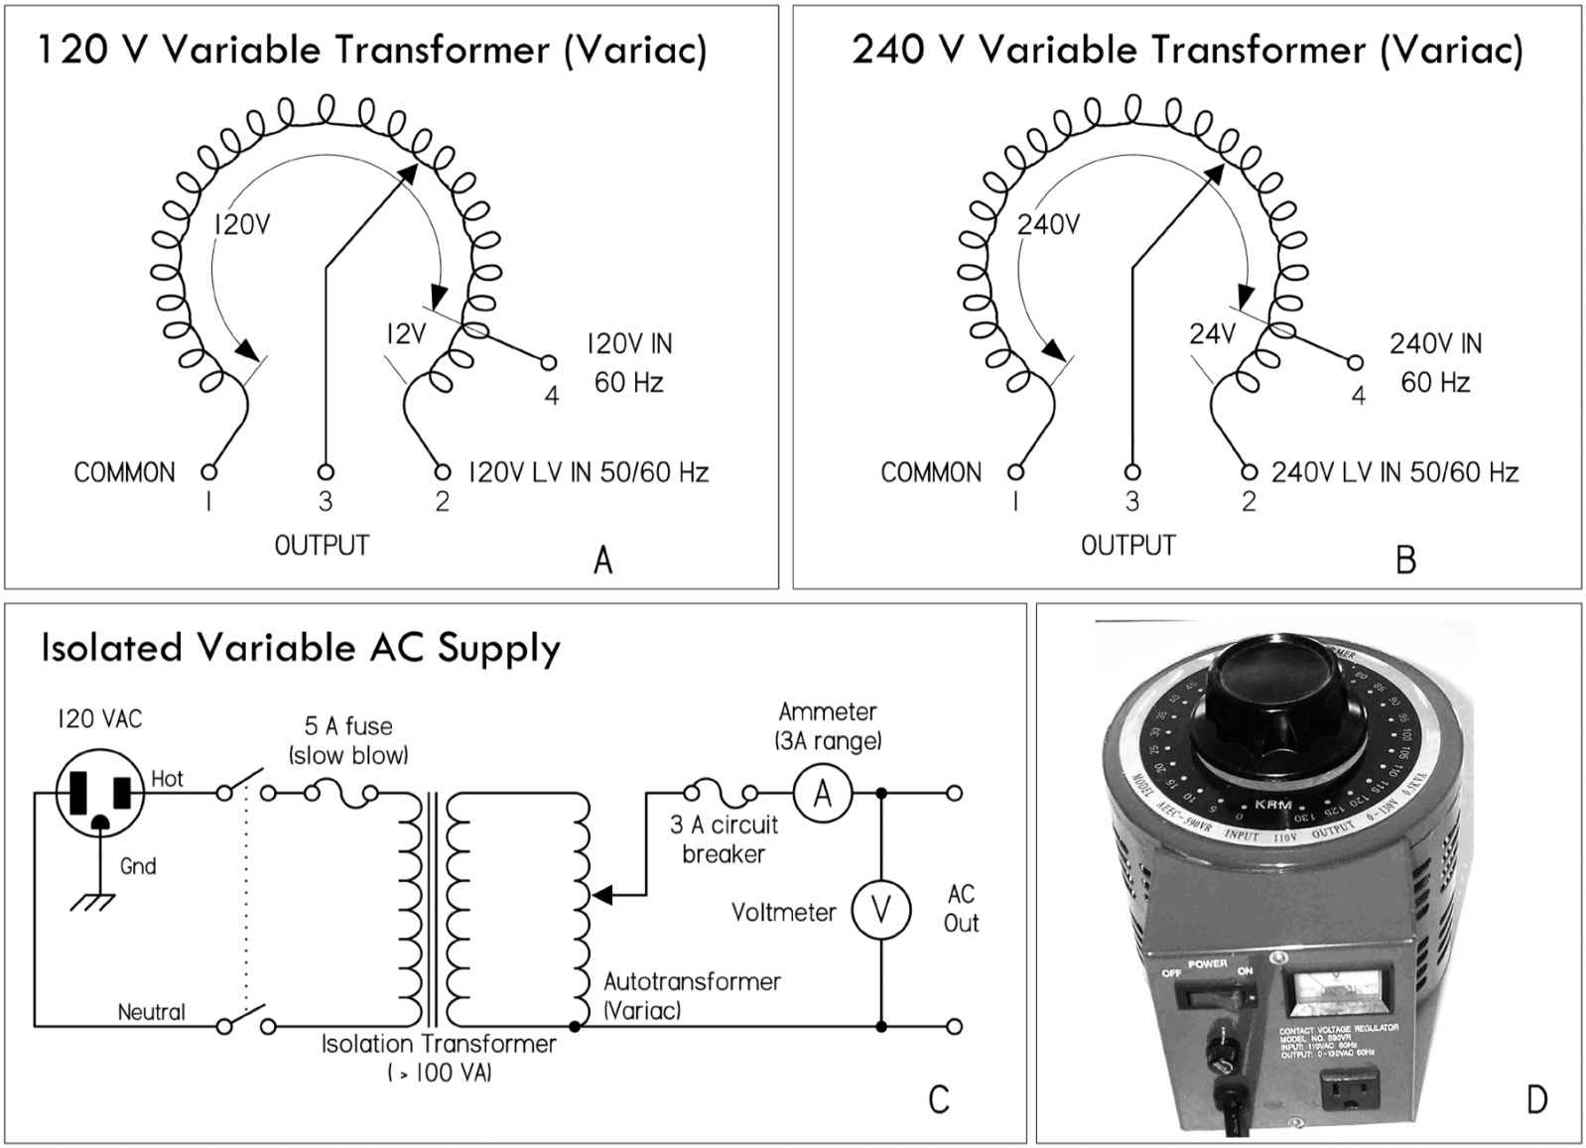 variac schematic symbol variable transformer financial accounting Clockwise Rotation Potentiometer Wiring  Transformer Types Vintage Variac Wiring A 15 KVA 277 to 208 Transformer Wiring Diagram